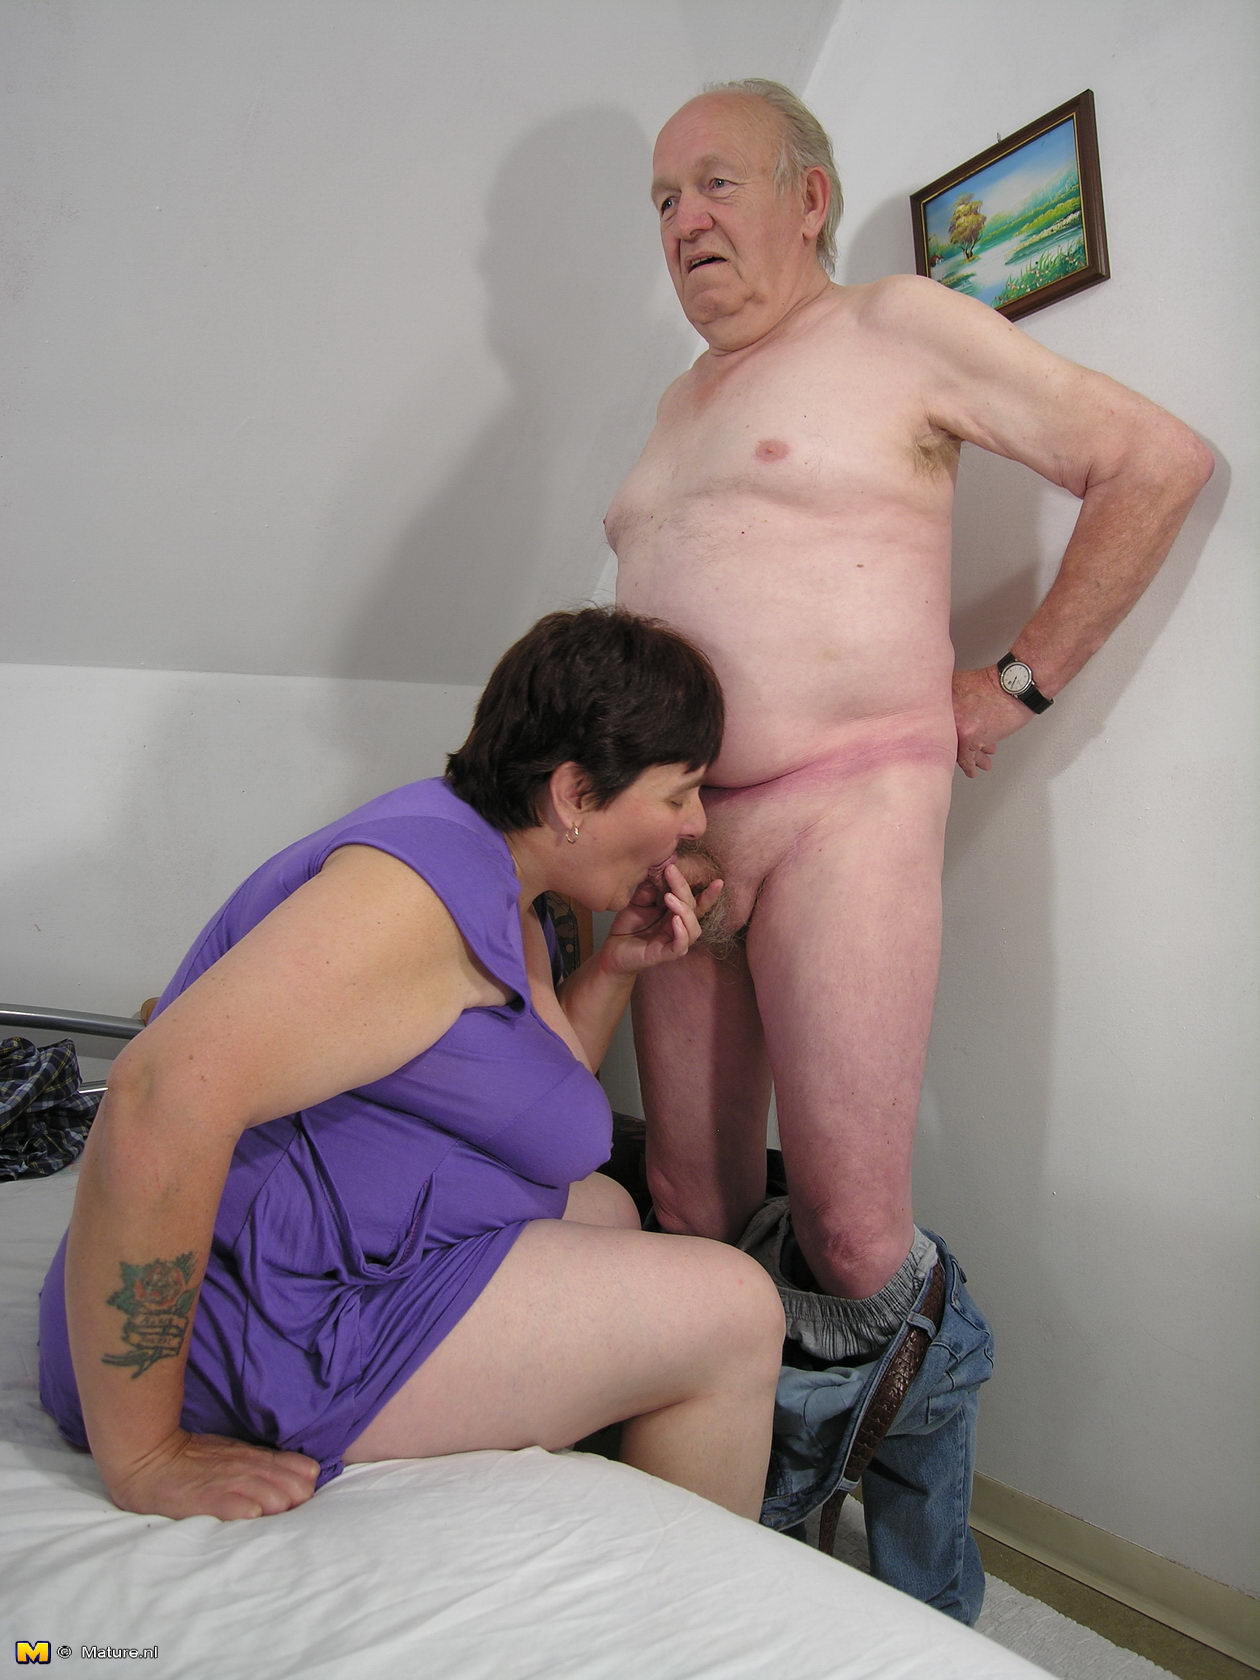 SUSAN: Big mama nue mature